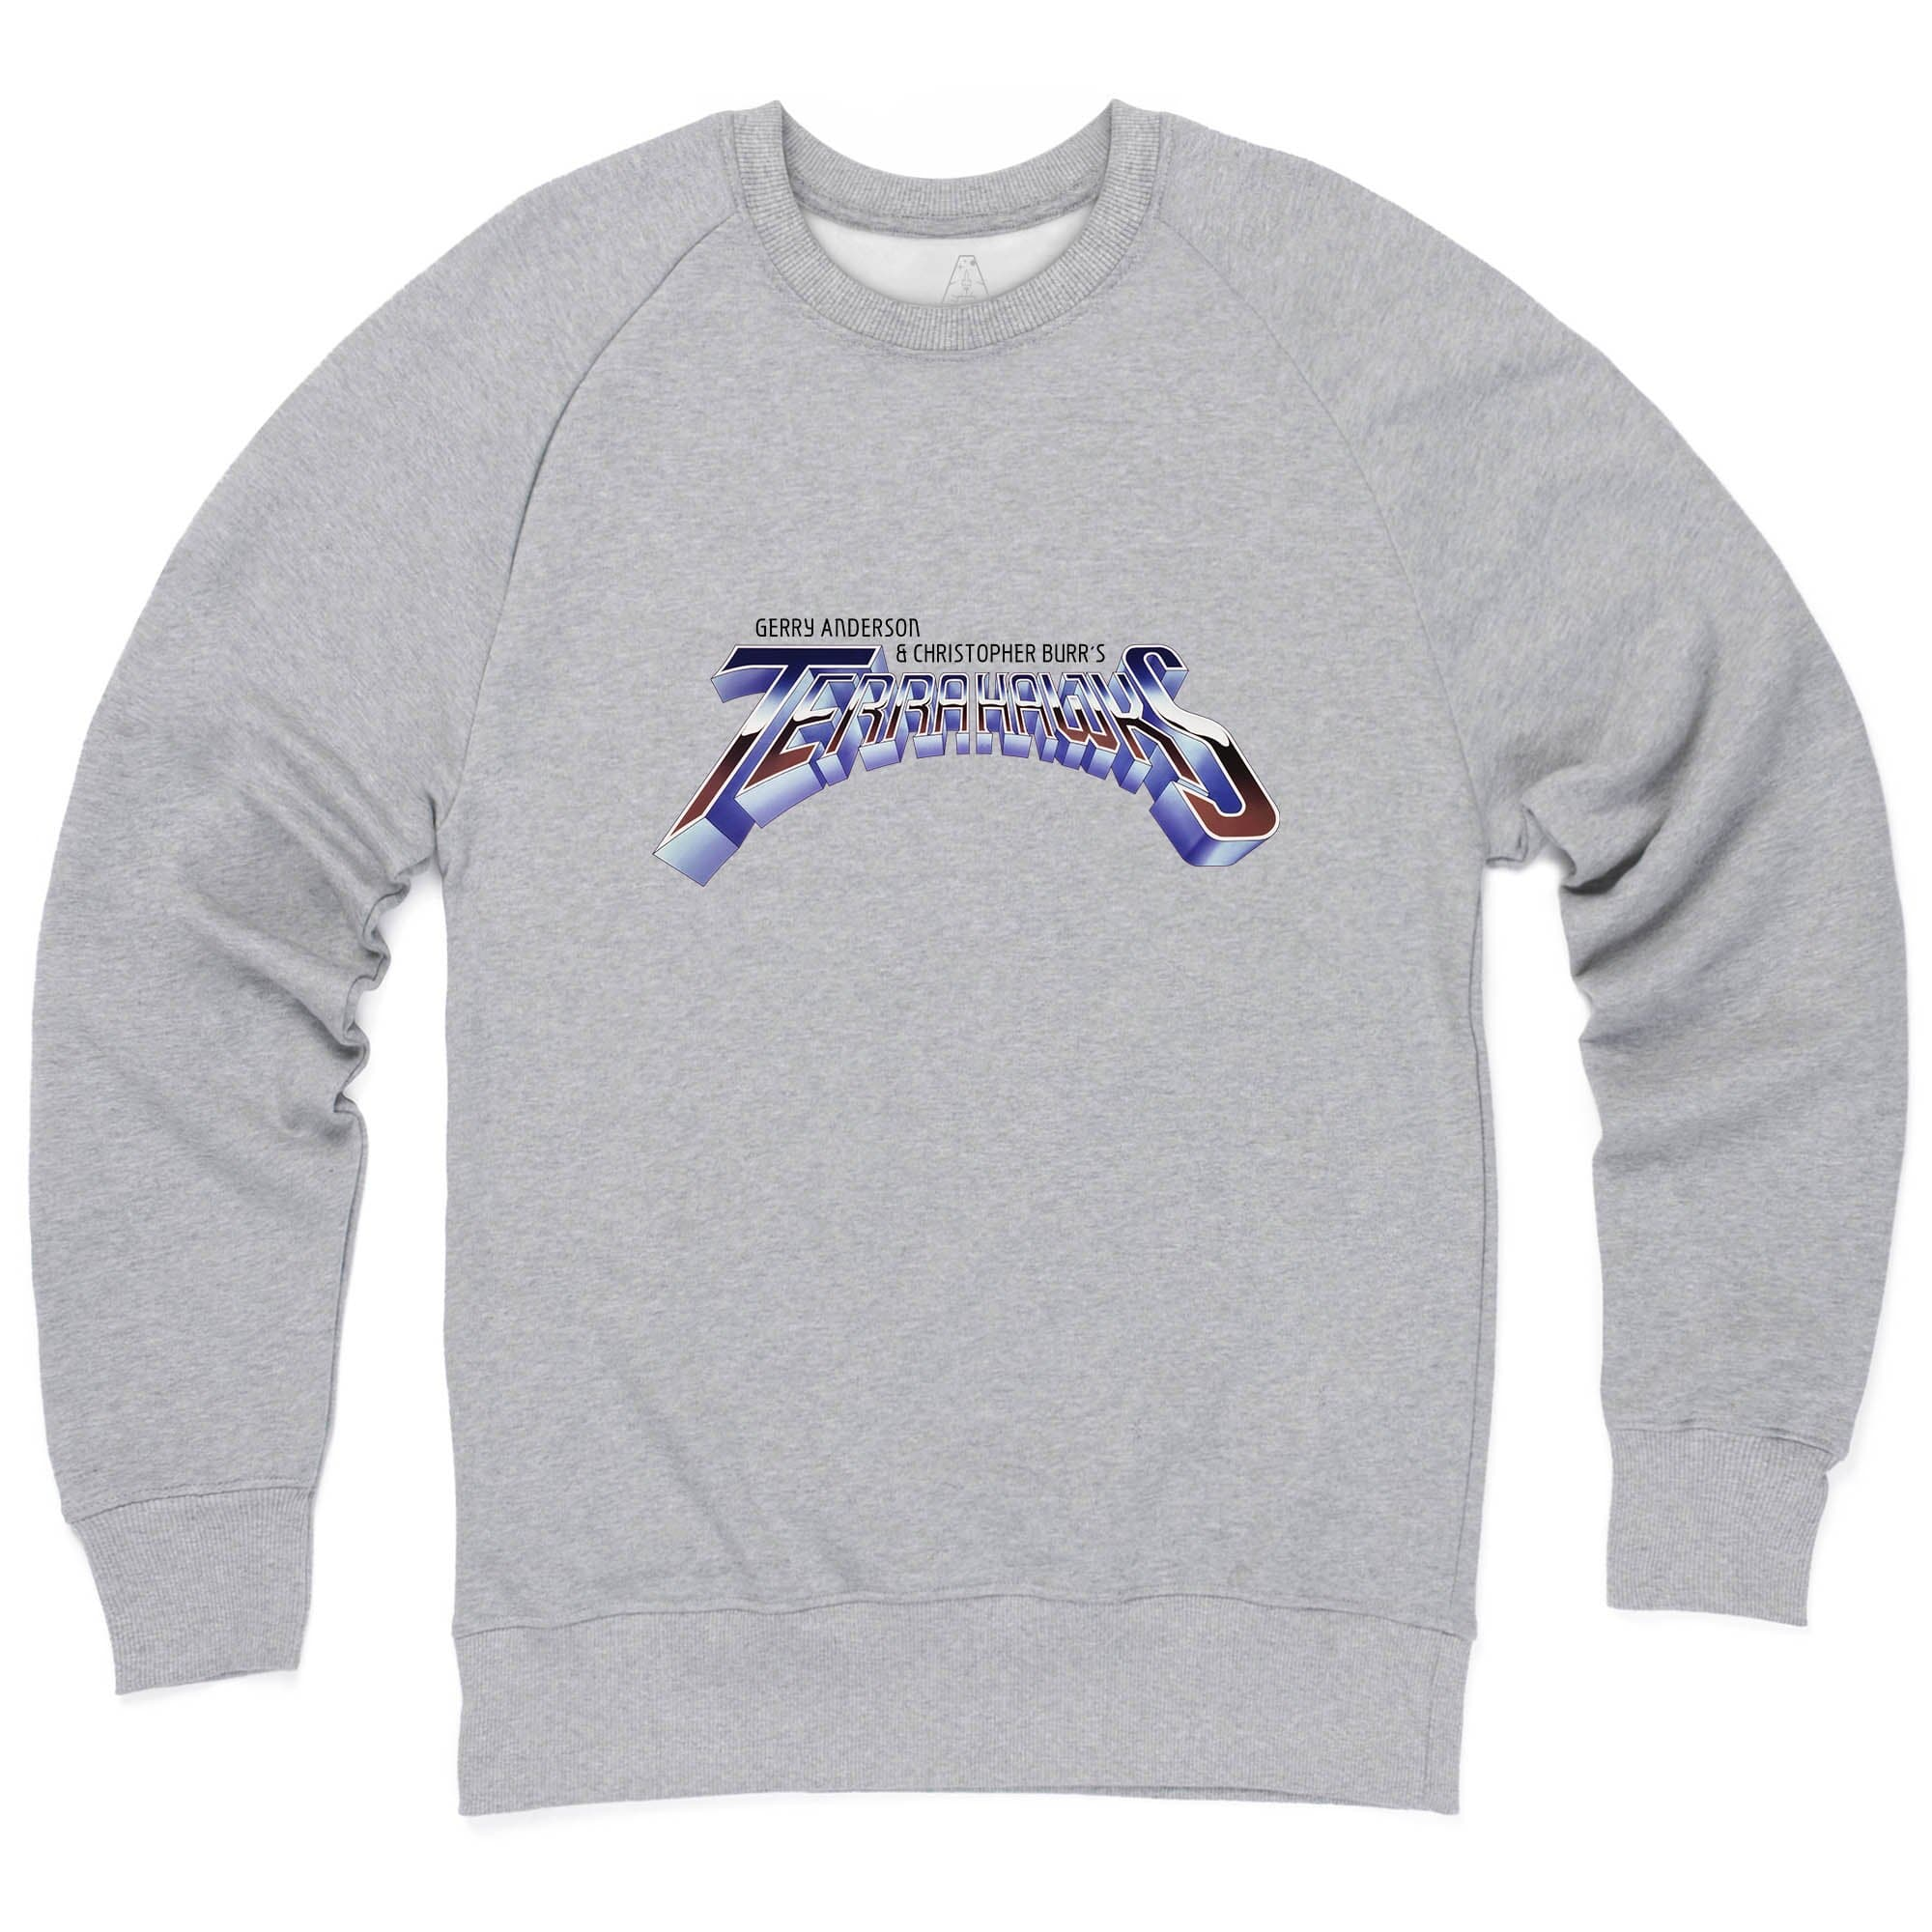 Terrahawks Logo Sweatshirt [Official & Exclusive] - The Gerry Anderson Store